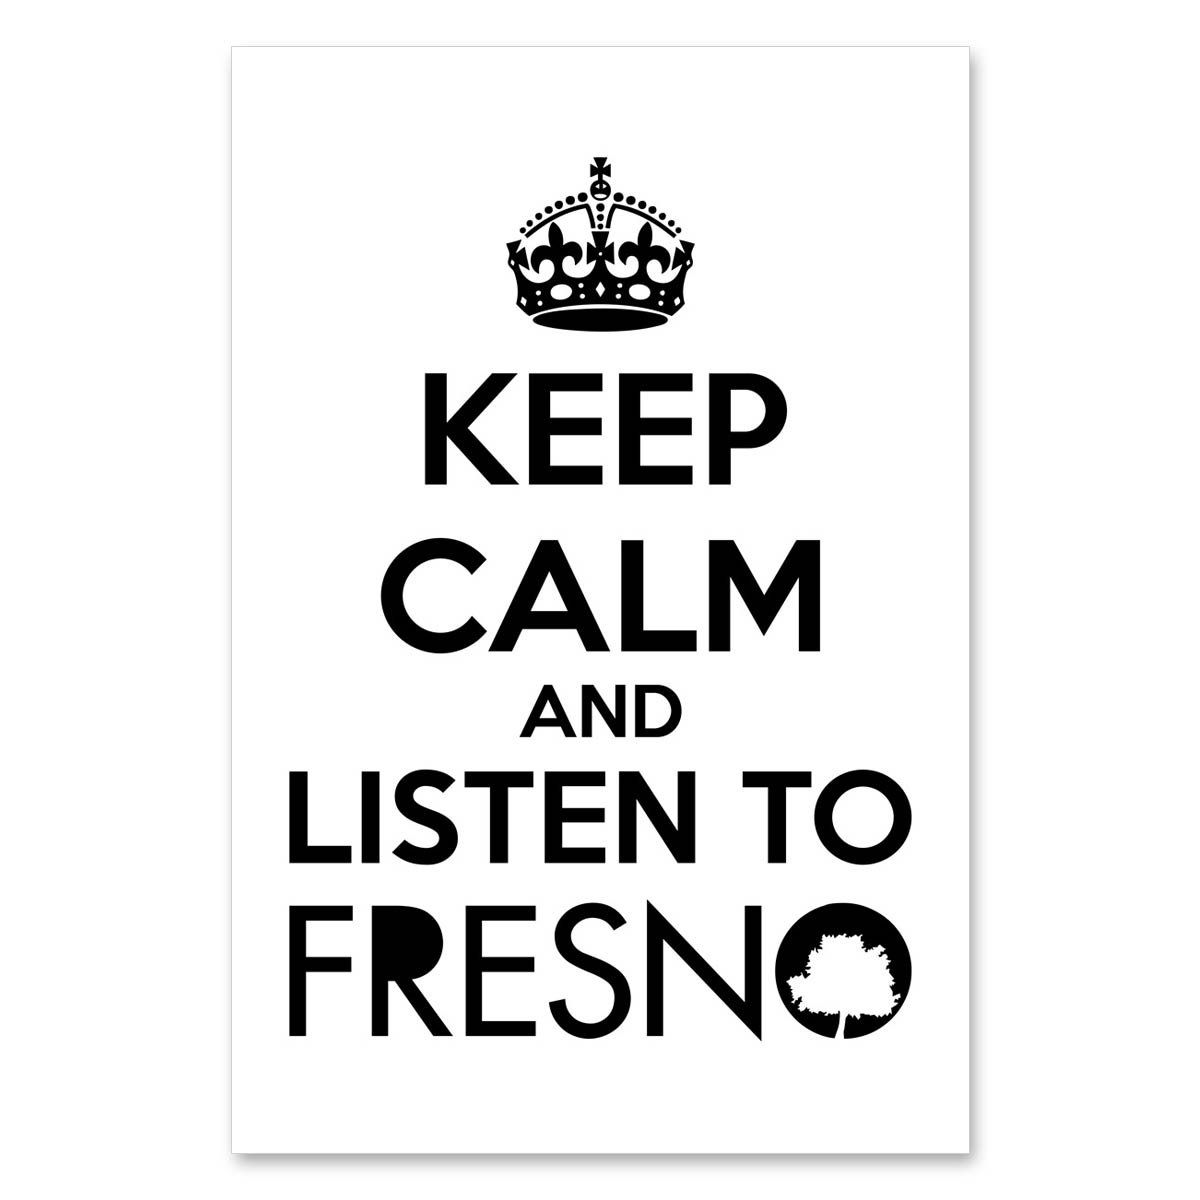 Pôster Fresno - Keep Calm